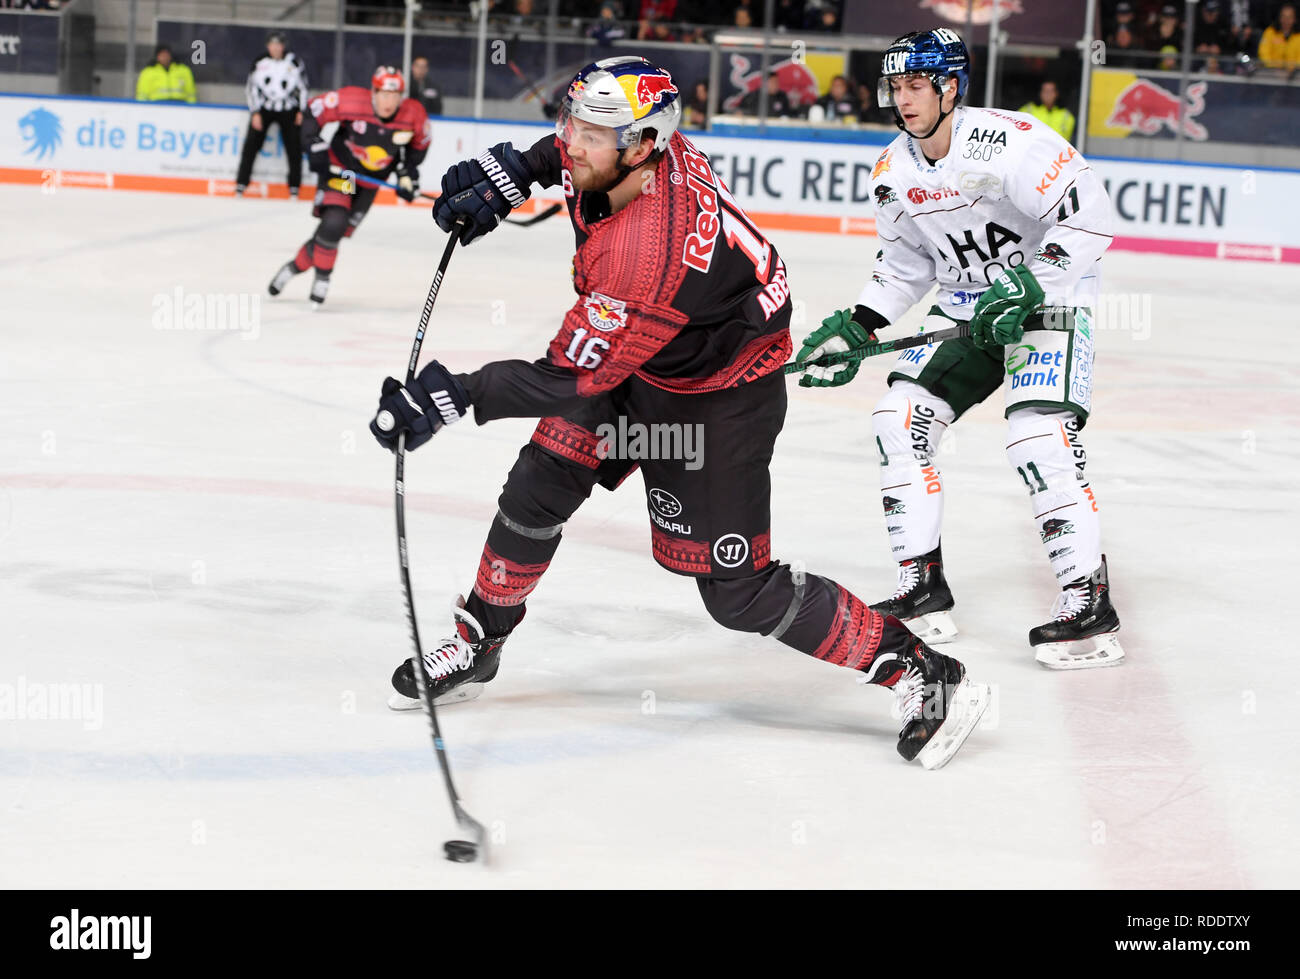 18 January 2019, Bavaria, München: Ice hockey: DEL, EHC Red Bull Munich - Augsburger Panther, main round, 40th matchday at the Olympic Ice Sport Centre in Munich. Konrad Abeltshauser (l) of Munich and Adam Payerl of Augsburg fight for the puck. Photo: Tobias Hase/dpa - Stock Image